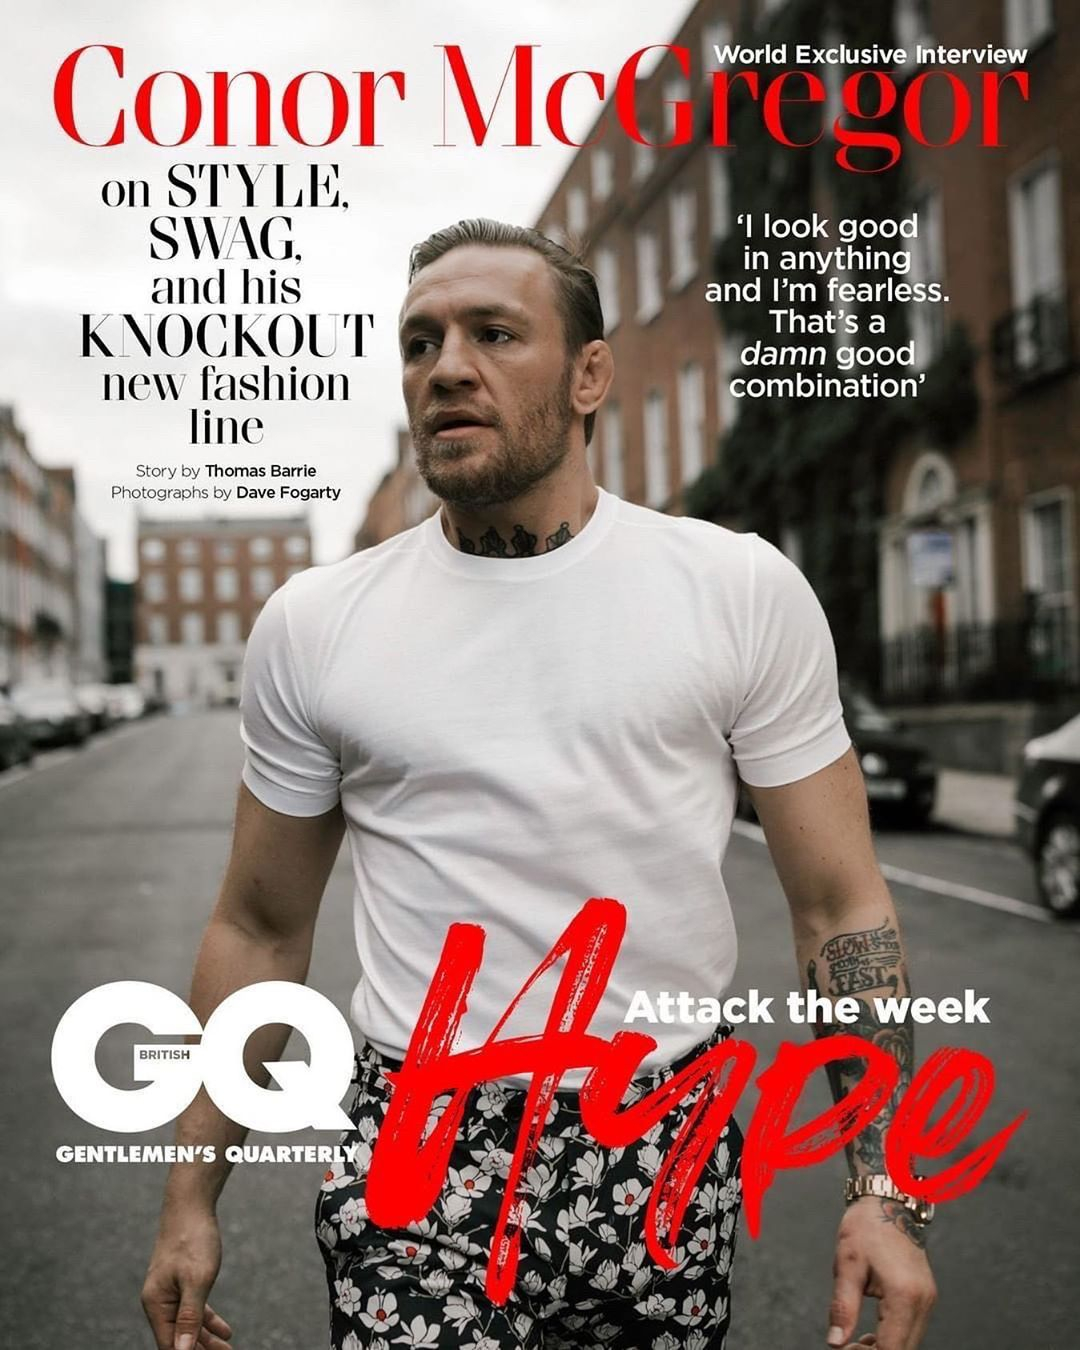 McGregor on the cover of the latest edition of GQ magazine